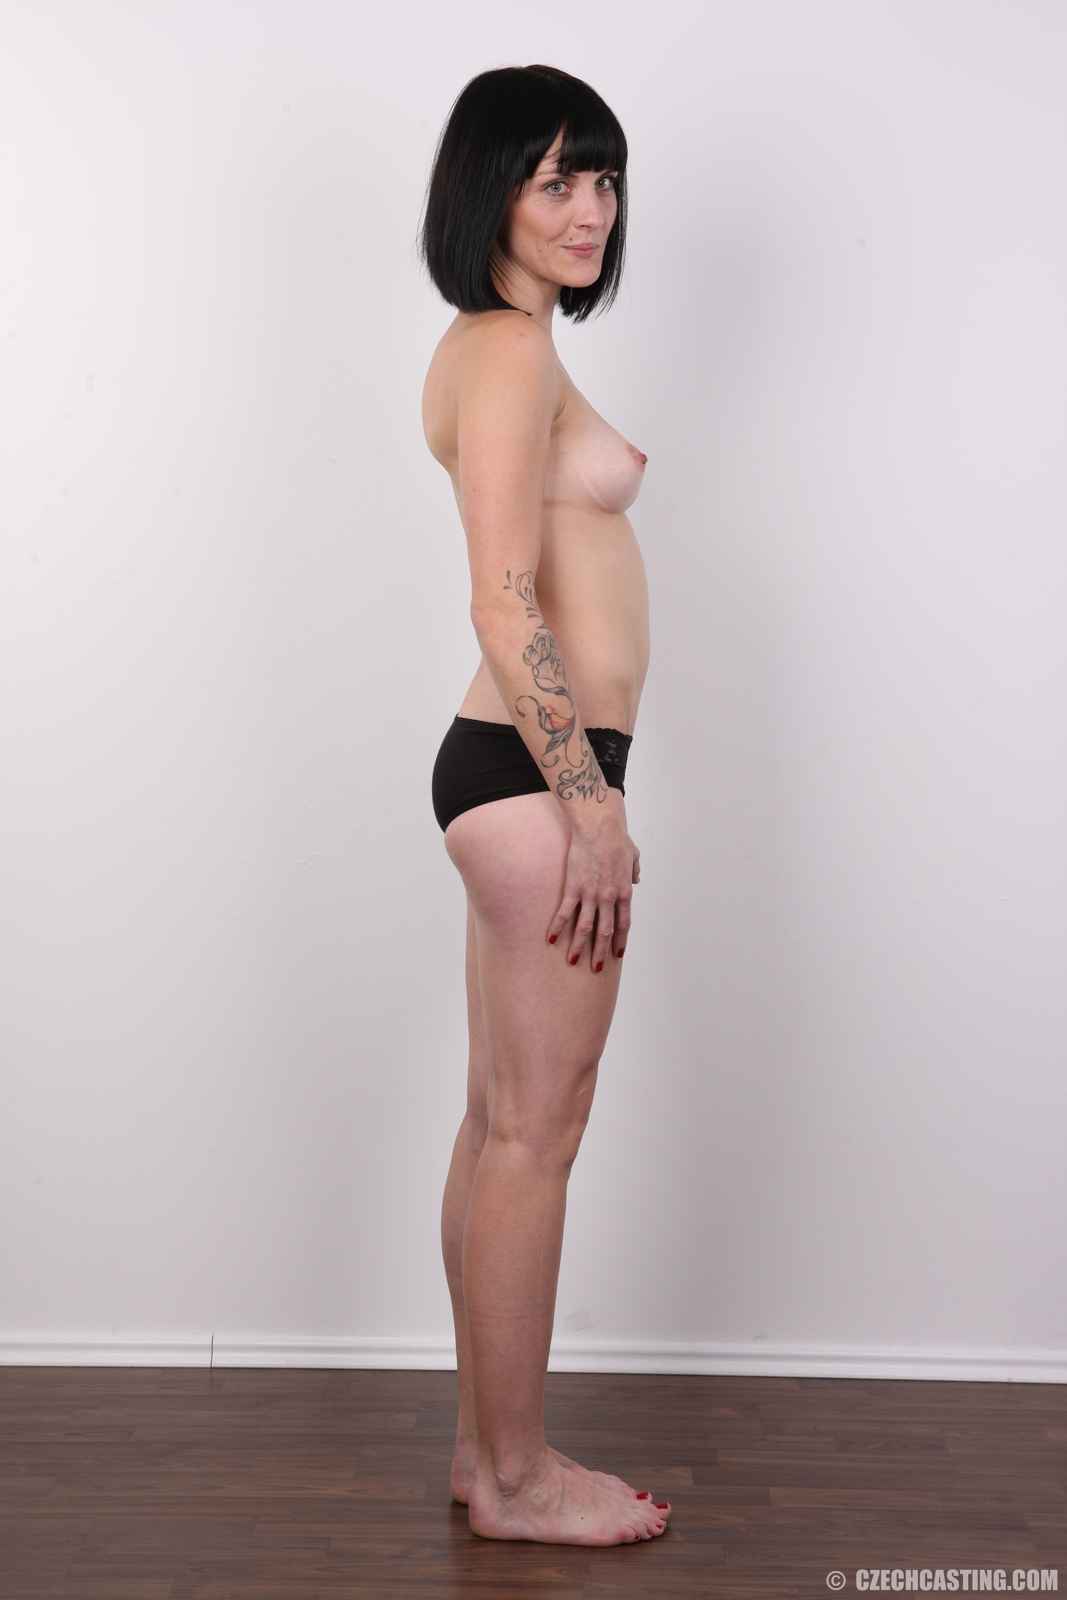 83Net.jp Server Laura Porn czech casting anita (1541) welcome to the biggest amateur